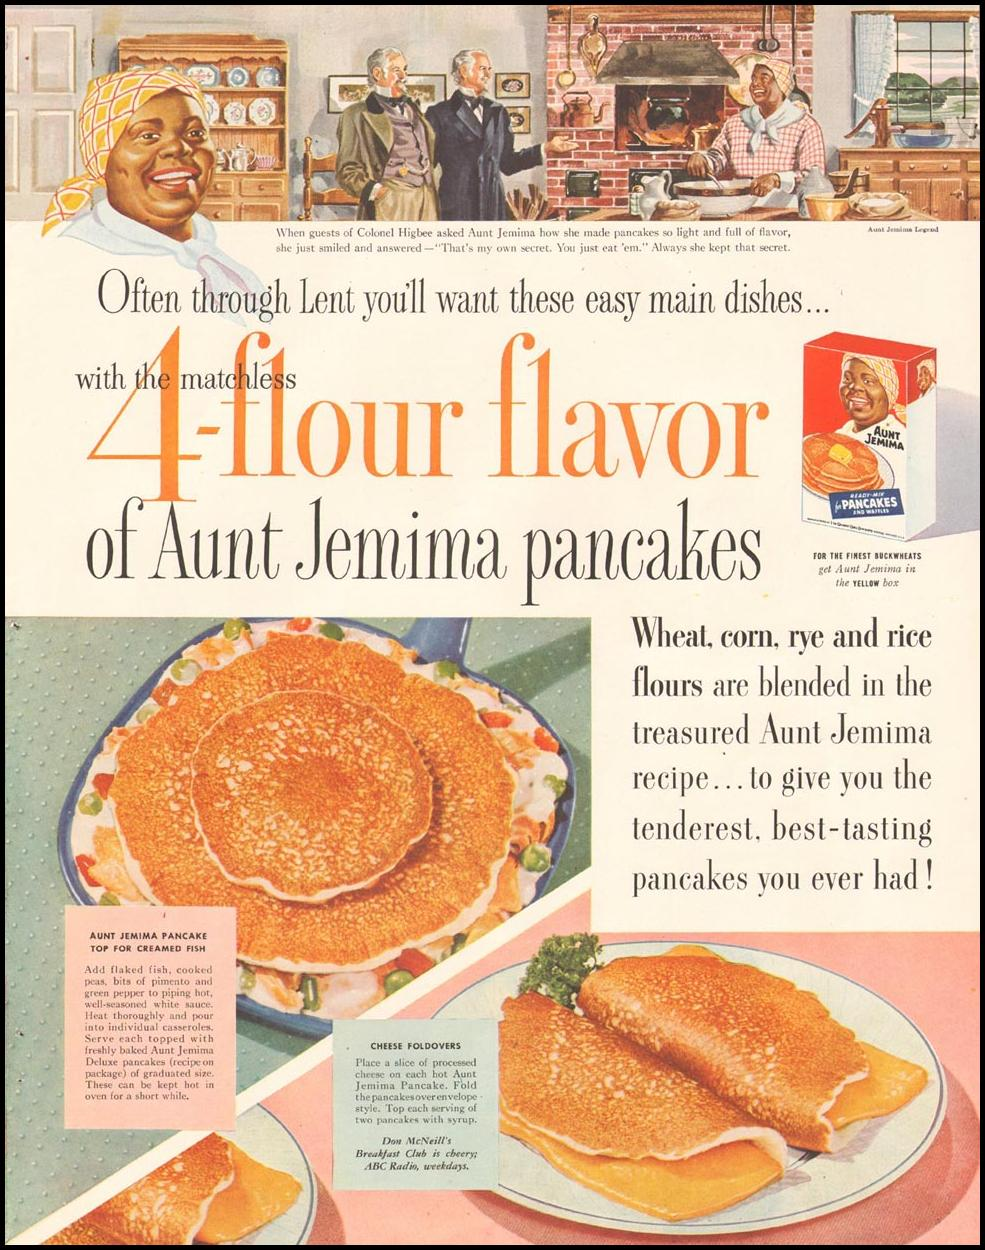 AUNT JEMIMA PANCAKES LADIES' HOME JOURNAL 03/01/1954 p. 107